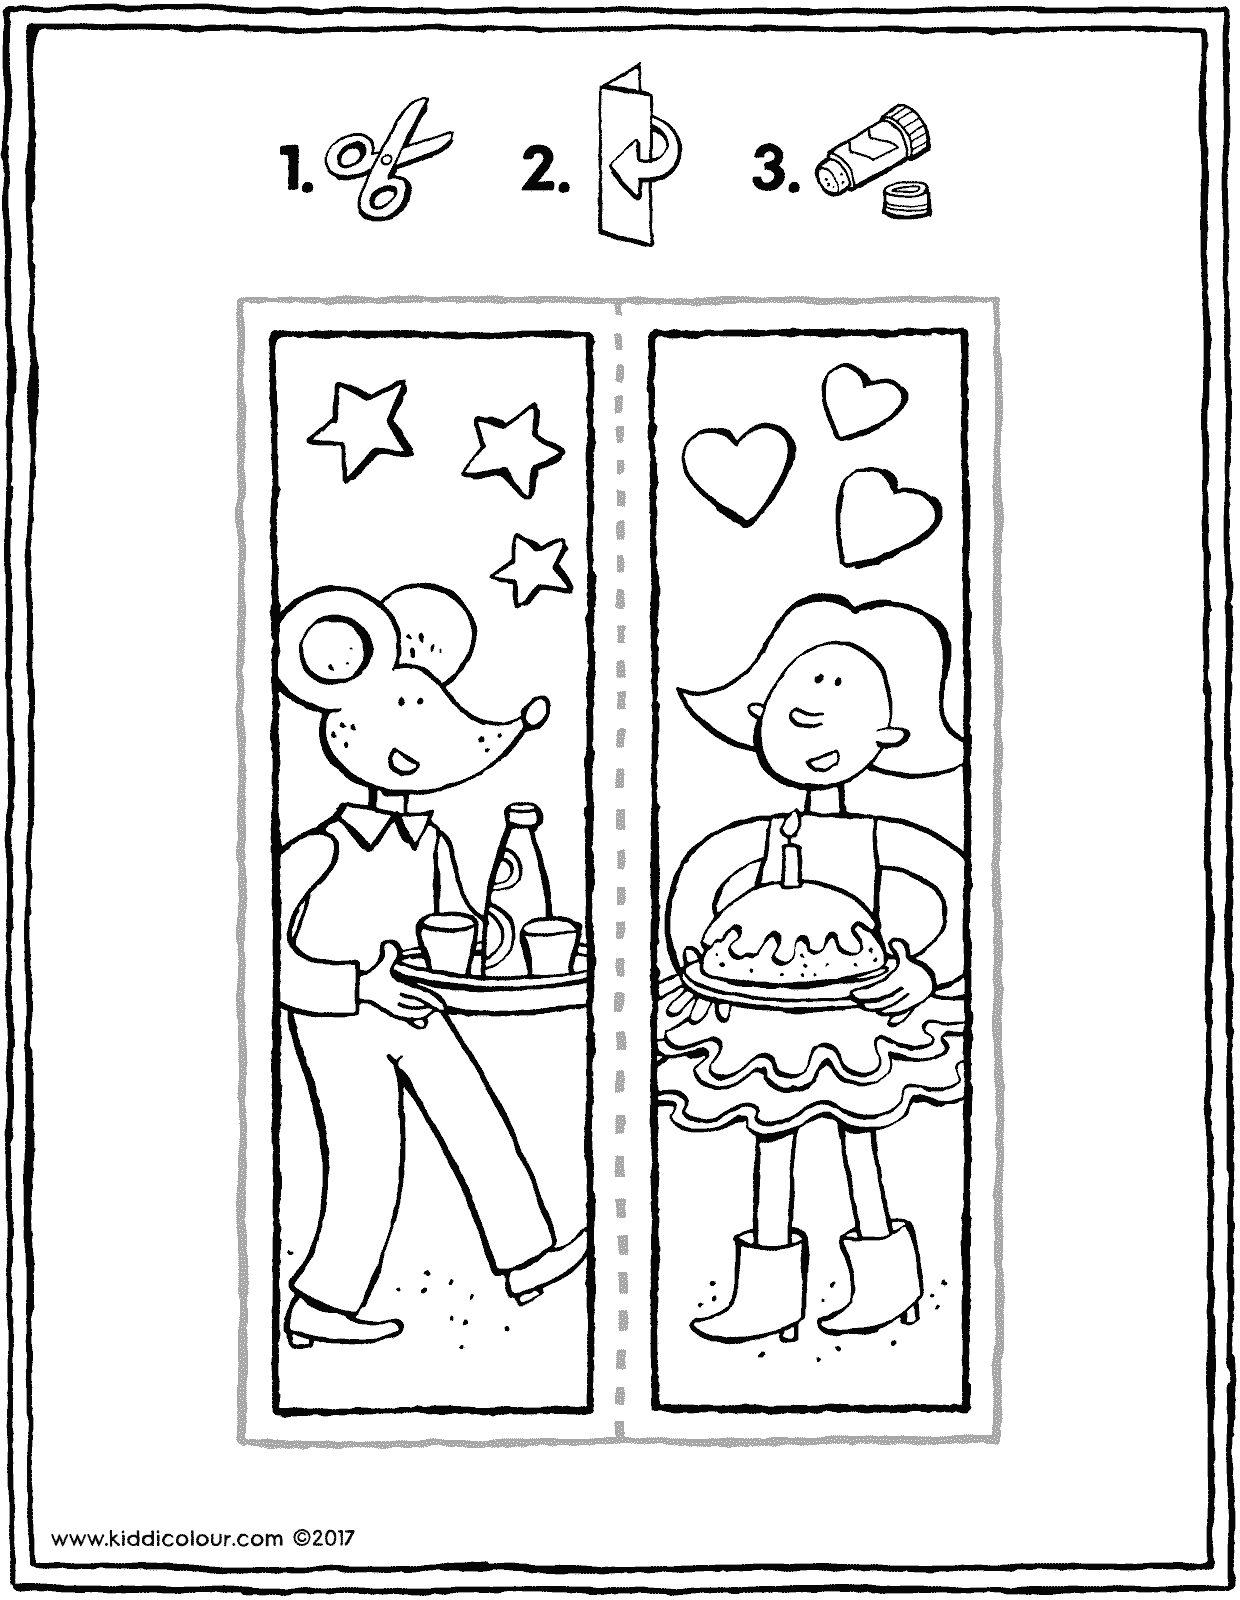 Emma and Thomas bookmark crafts colouring page page drawing picture 01V